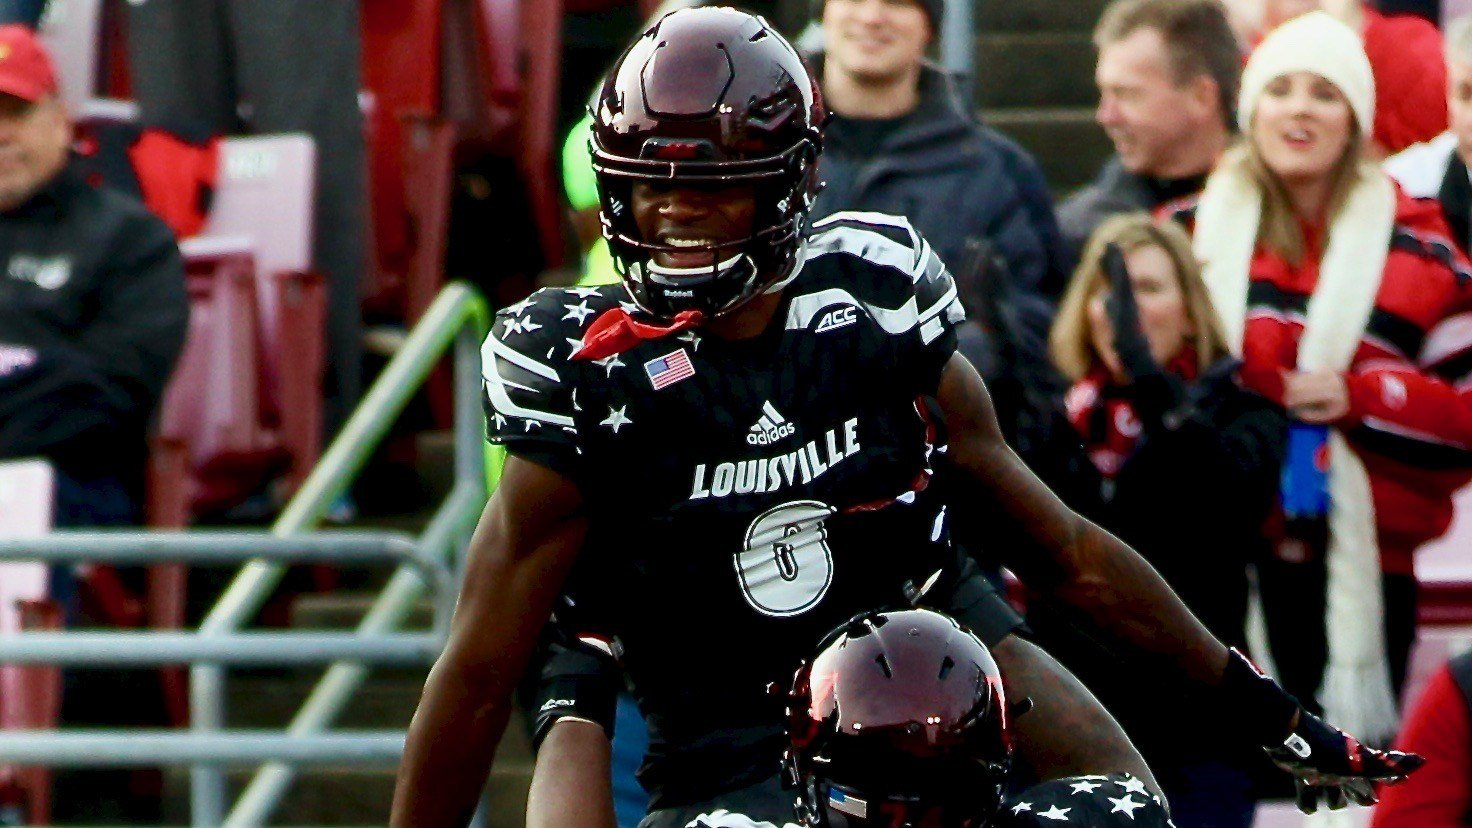 Louisville vs. Mississippi State, TaxSlayer Bowl 2017 live stream